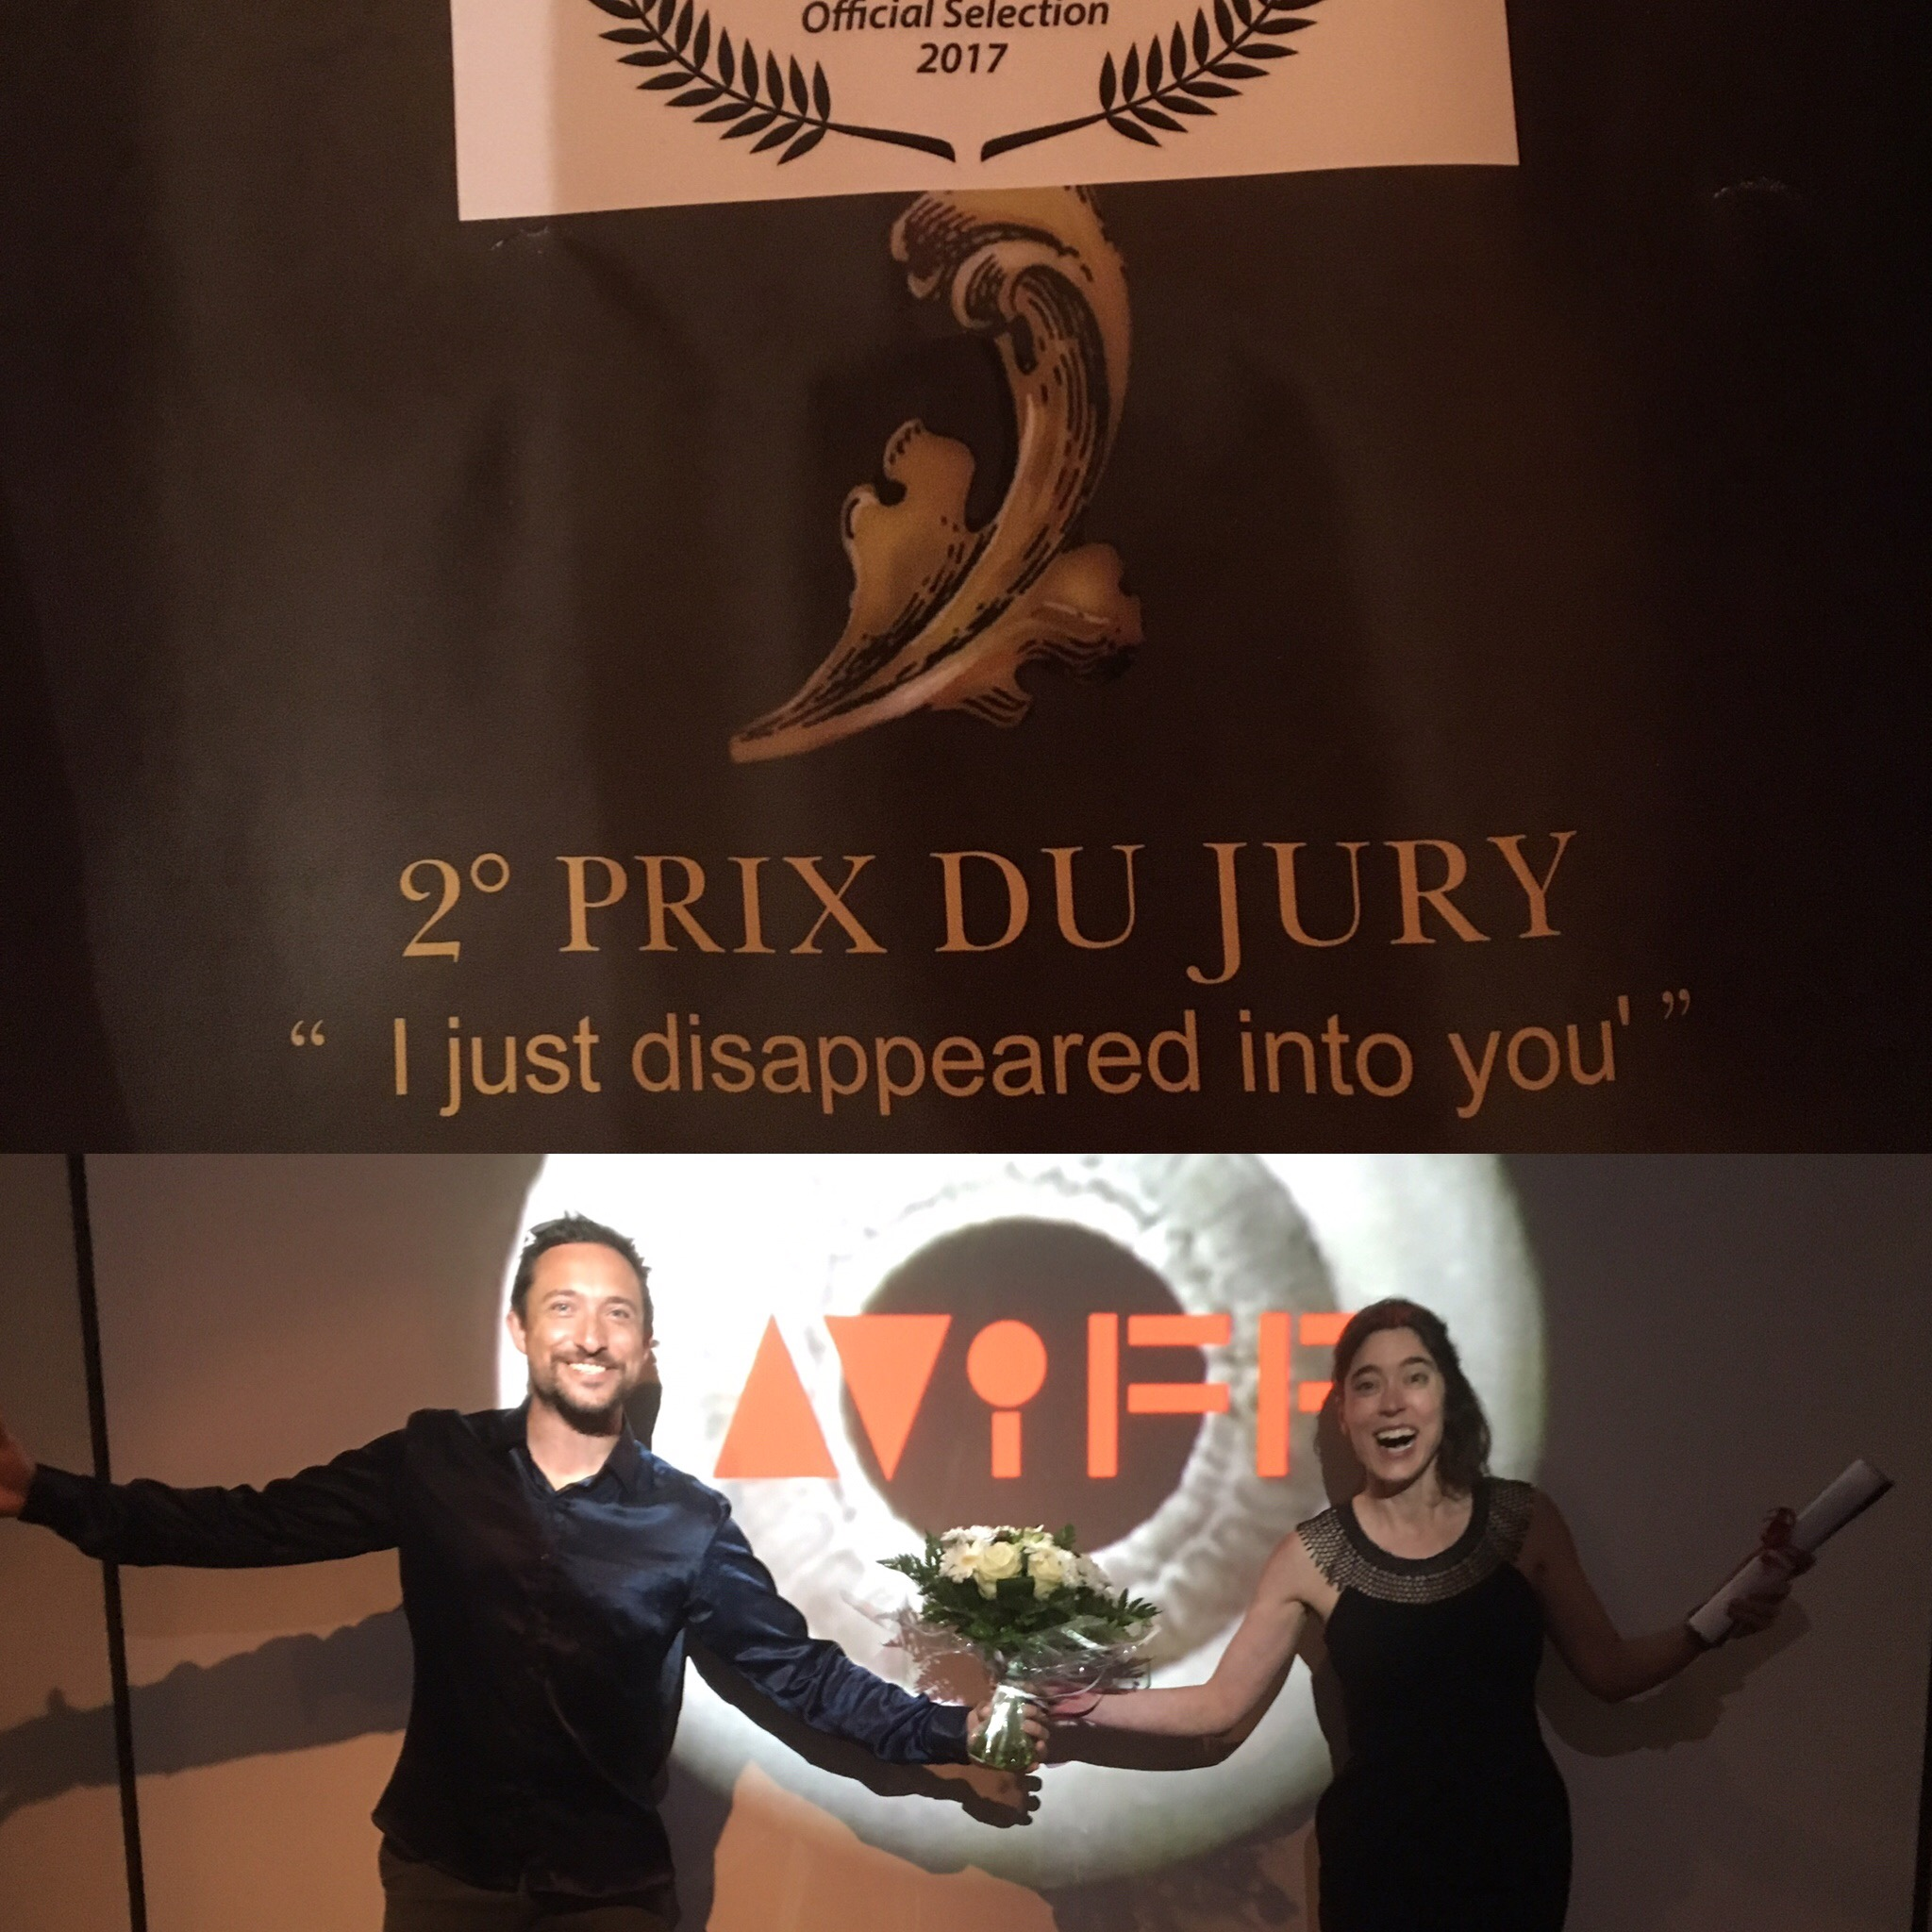 'I just disappeared' wins 2nd Jury Prize at Cannes Art/Film Festival 2017 - Directed by Roxana Vilk and Music Production by Peter VilkTrailer of I just disappeared here